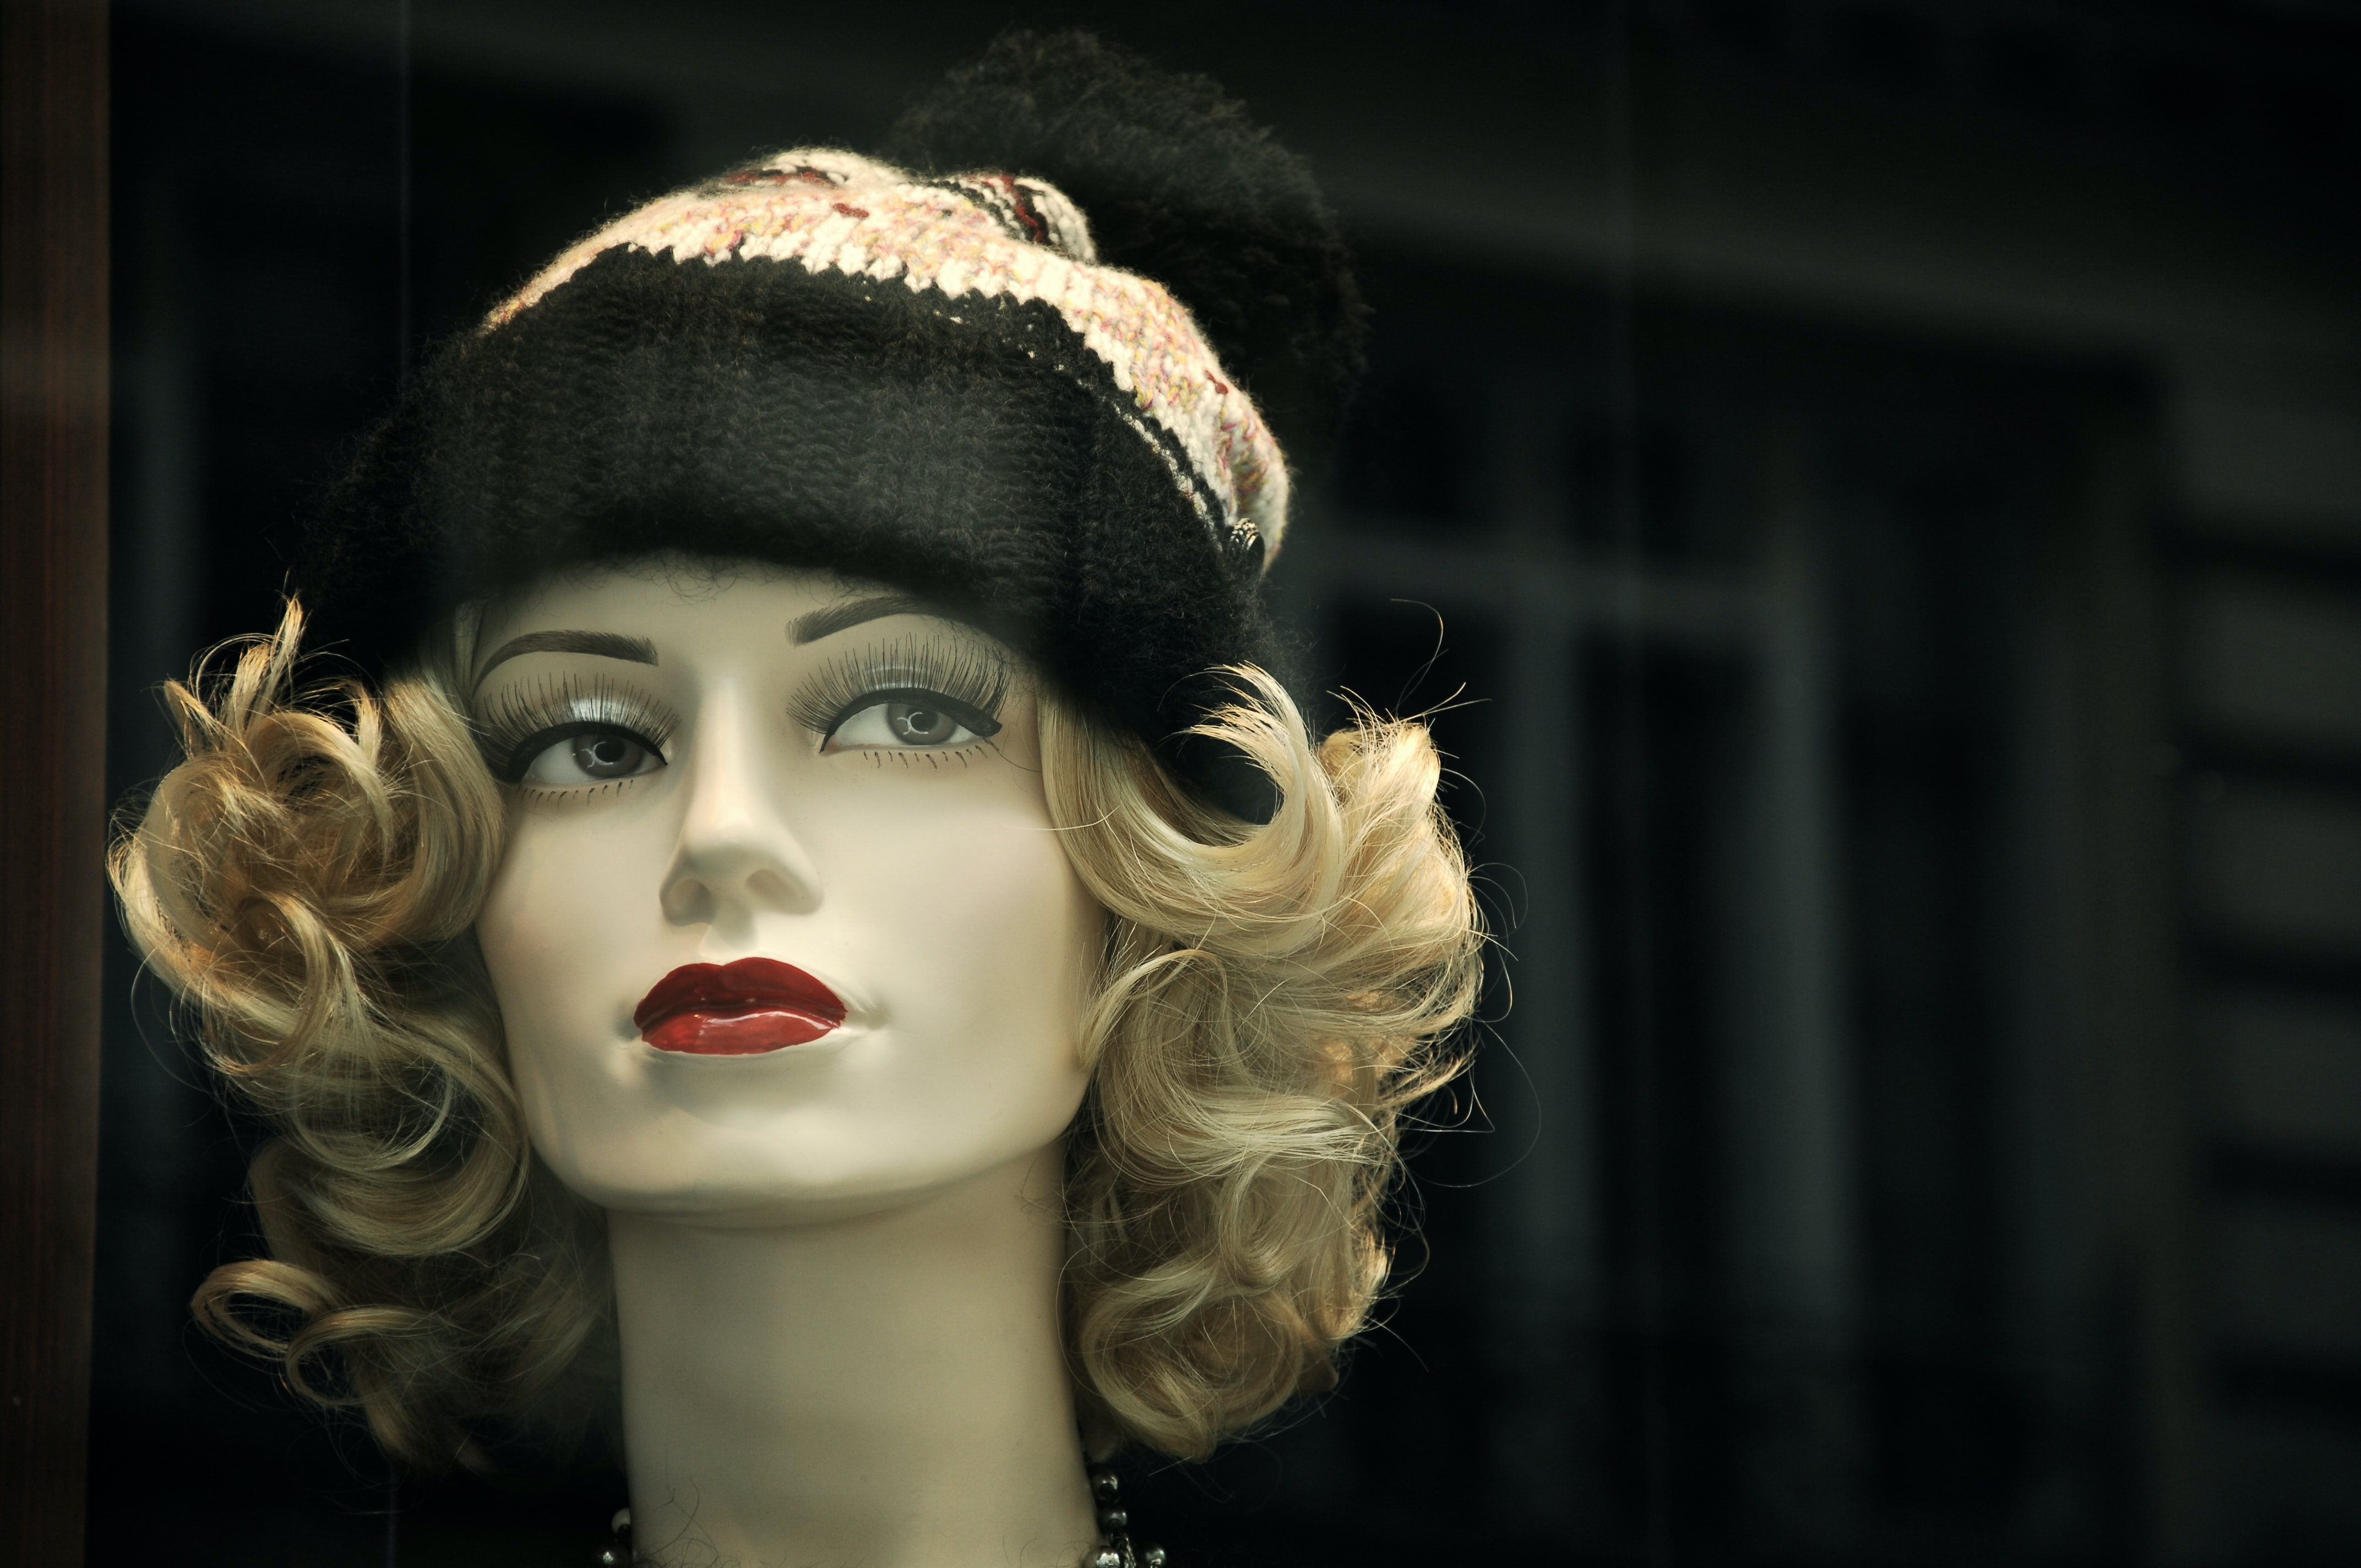 bobble hat on mannequin's head